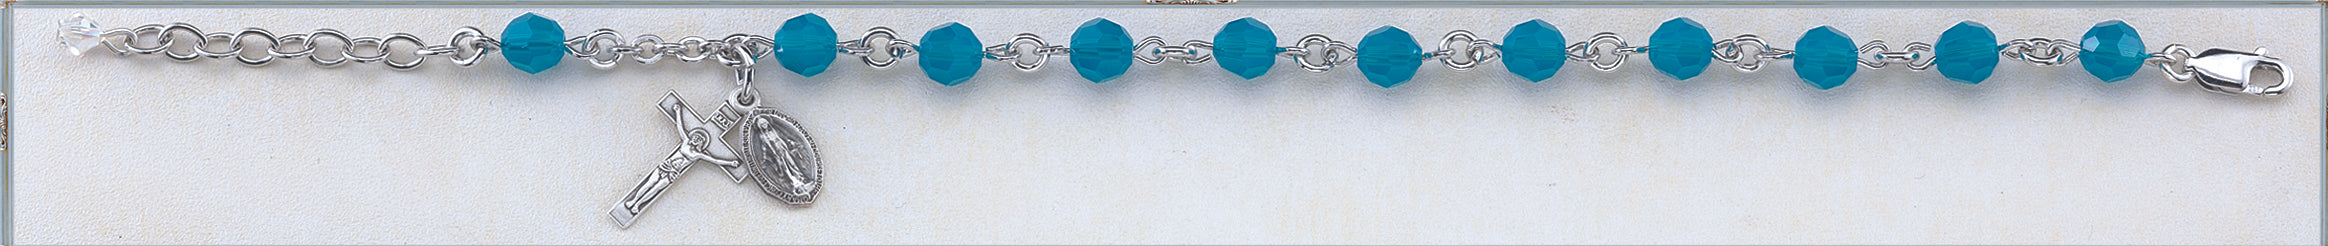 Coral Blue Round Faceted Swarovski Crystal Sterling Bracelet